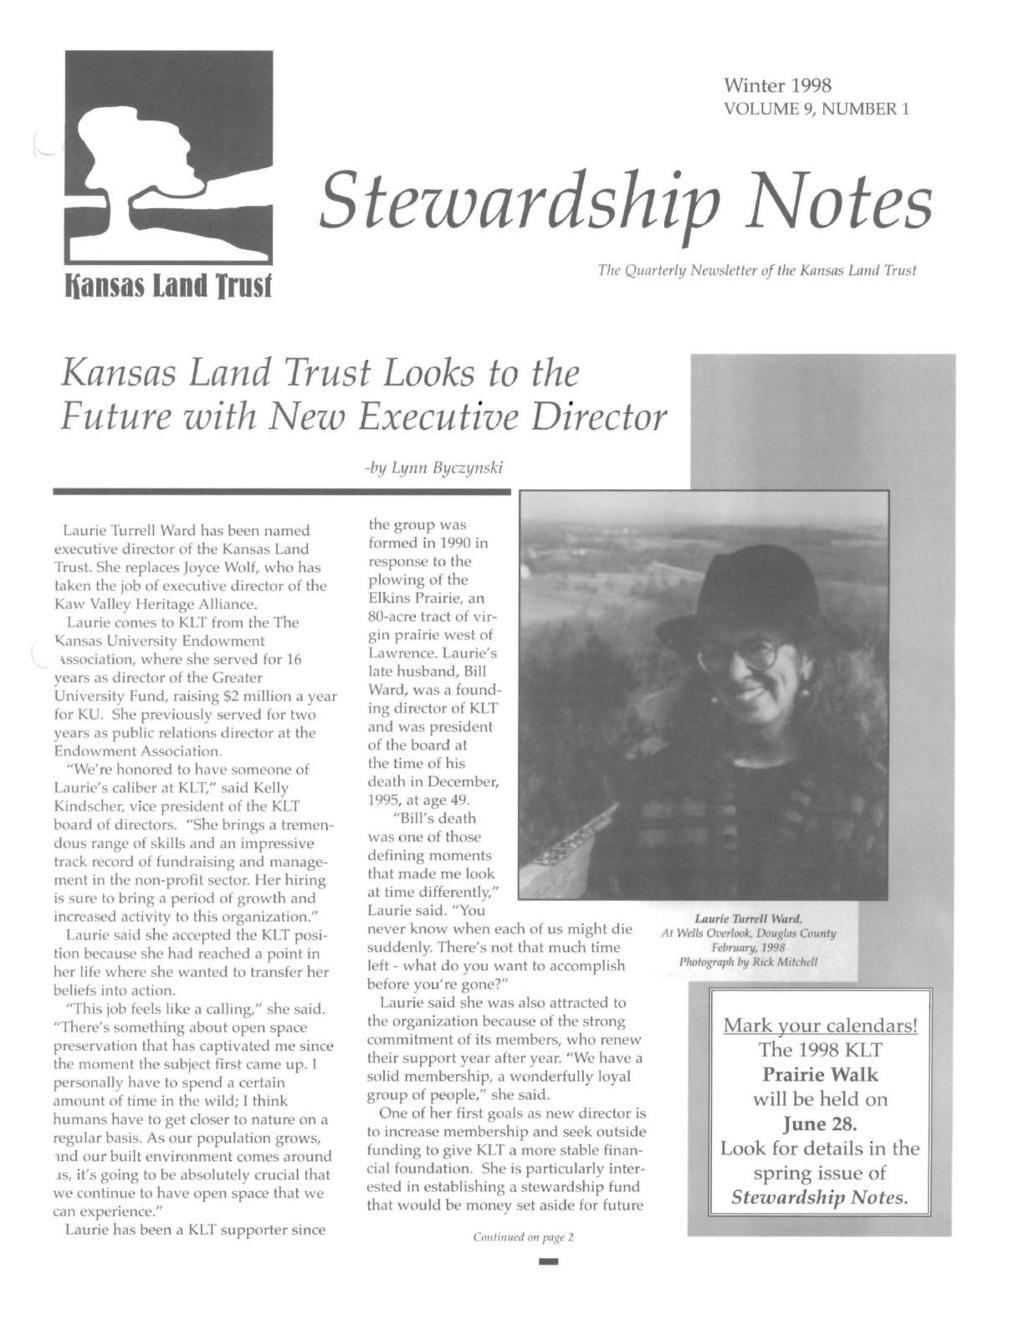 Winter 1998 VOLUME 9, NUMBER 1 Steuuardship ~otes liansas Land Trusf The Quarterly Newsletter of the Kansas Land Trust Kansas Land Trust Looks to the Future with New Executive Director -by Lynn